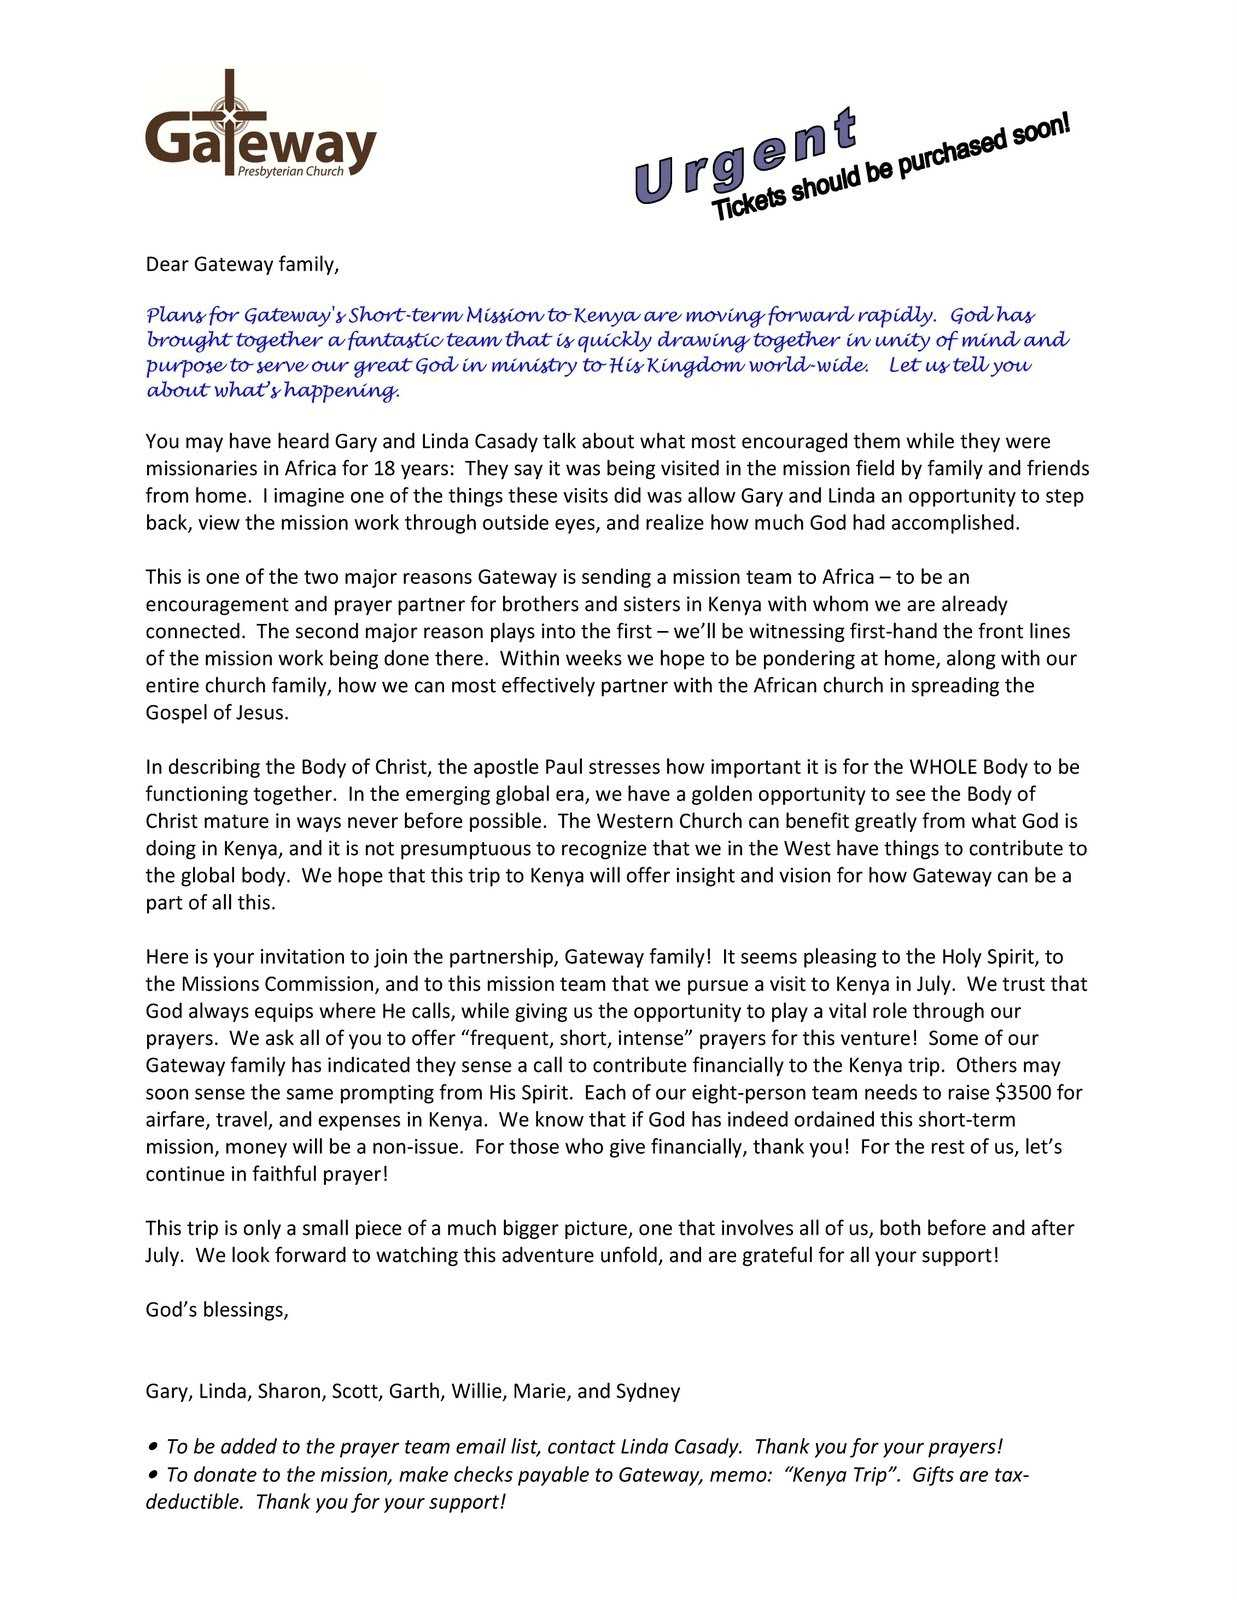 mission trip donation letter template example-Early Childhood Philosophy Statement Examples Along with Mission Trip Support Letter Dolapgnetband 19-i